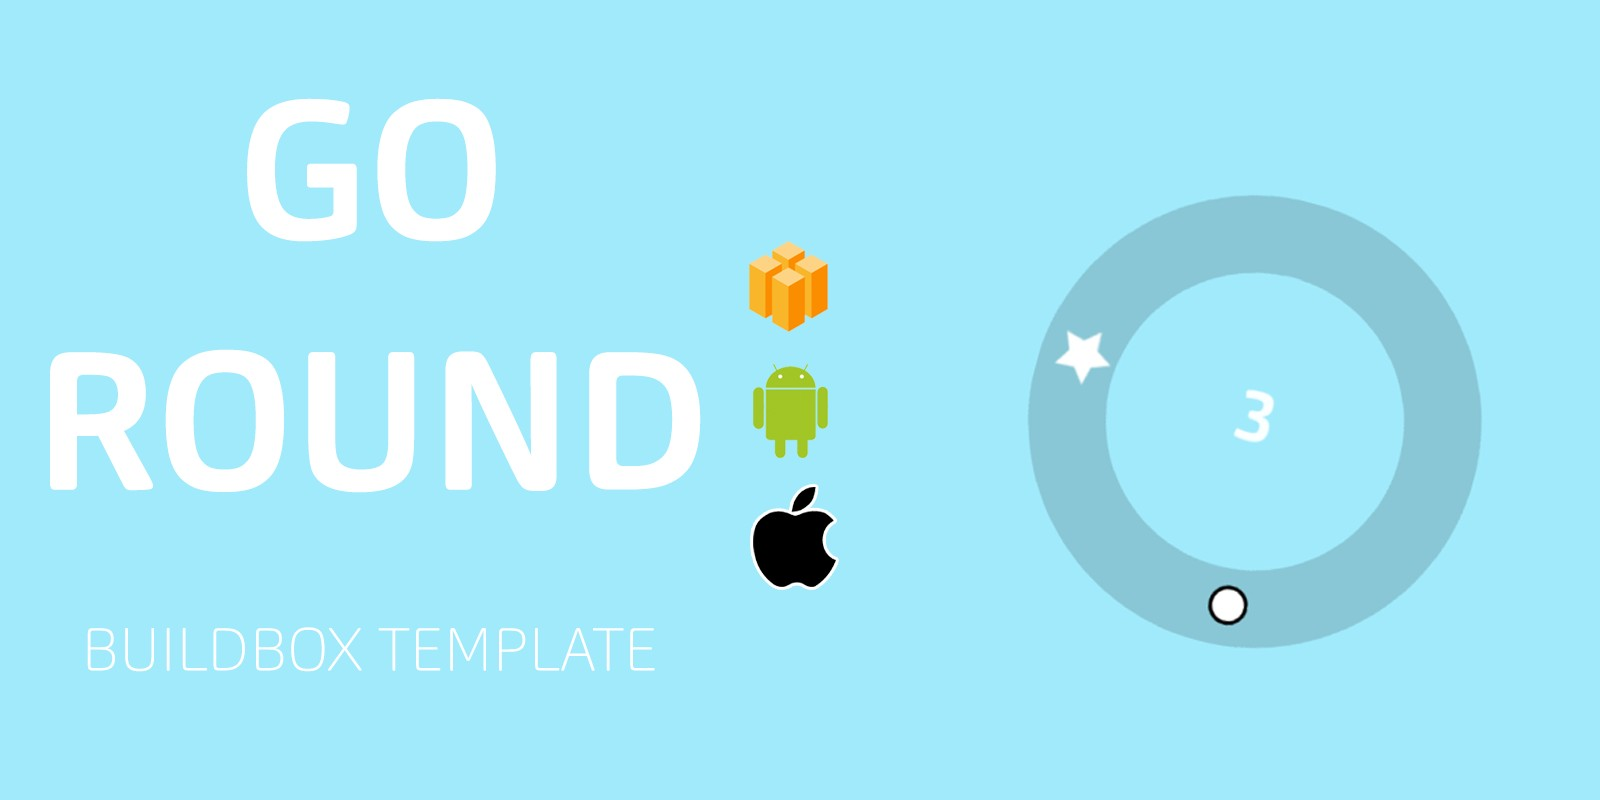 Go Round Buildbox Template